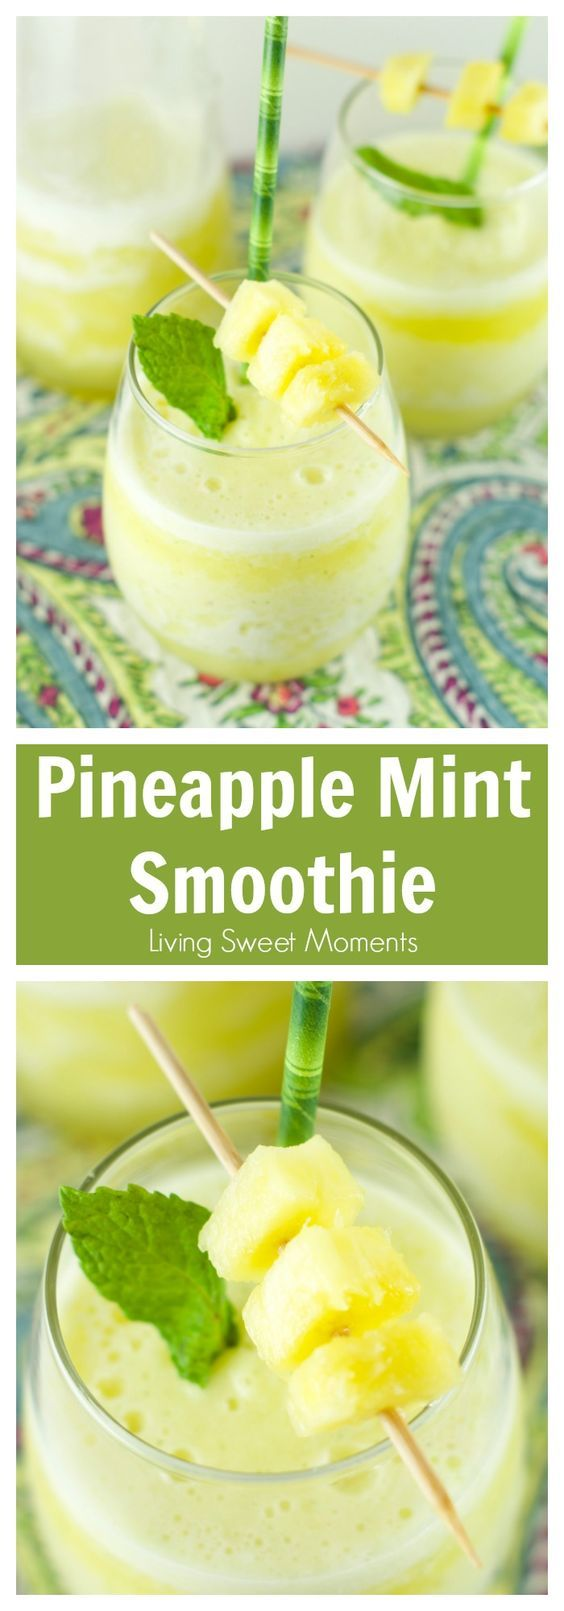 Pineapple Mint Smoothie Recipe - refreshing drink for Spring and Summer. Blended with lot's of ice for an interesting and flavorful healthy tropical beverage without booze. More on livingsweetmoment...